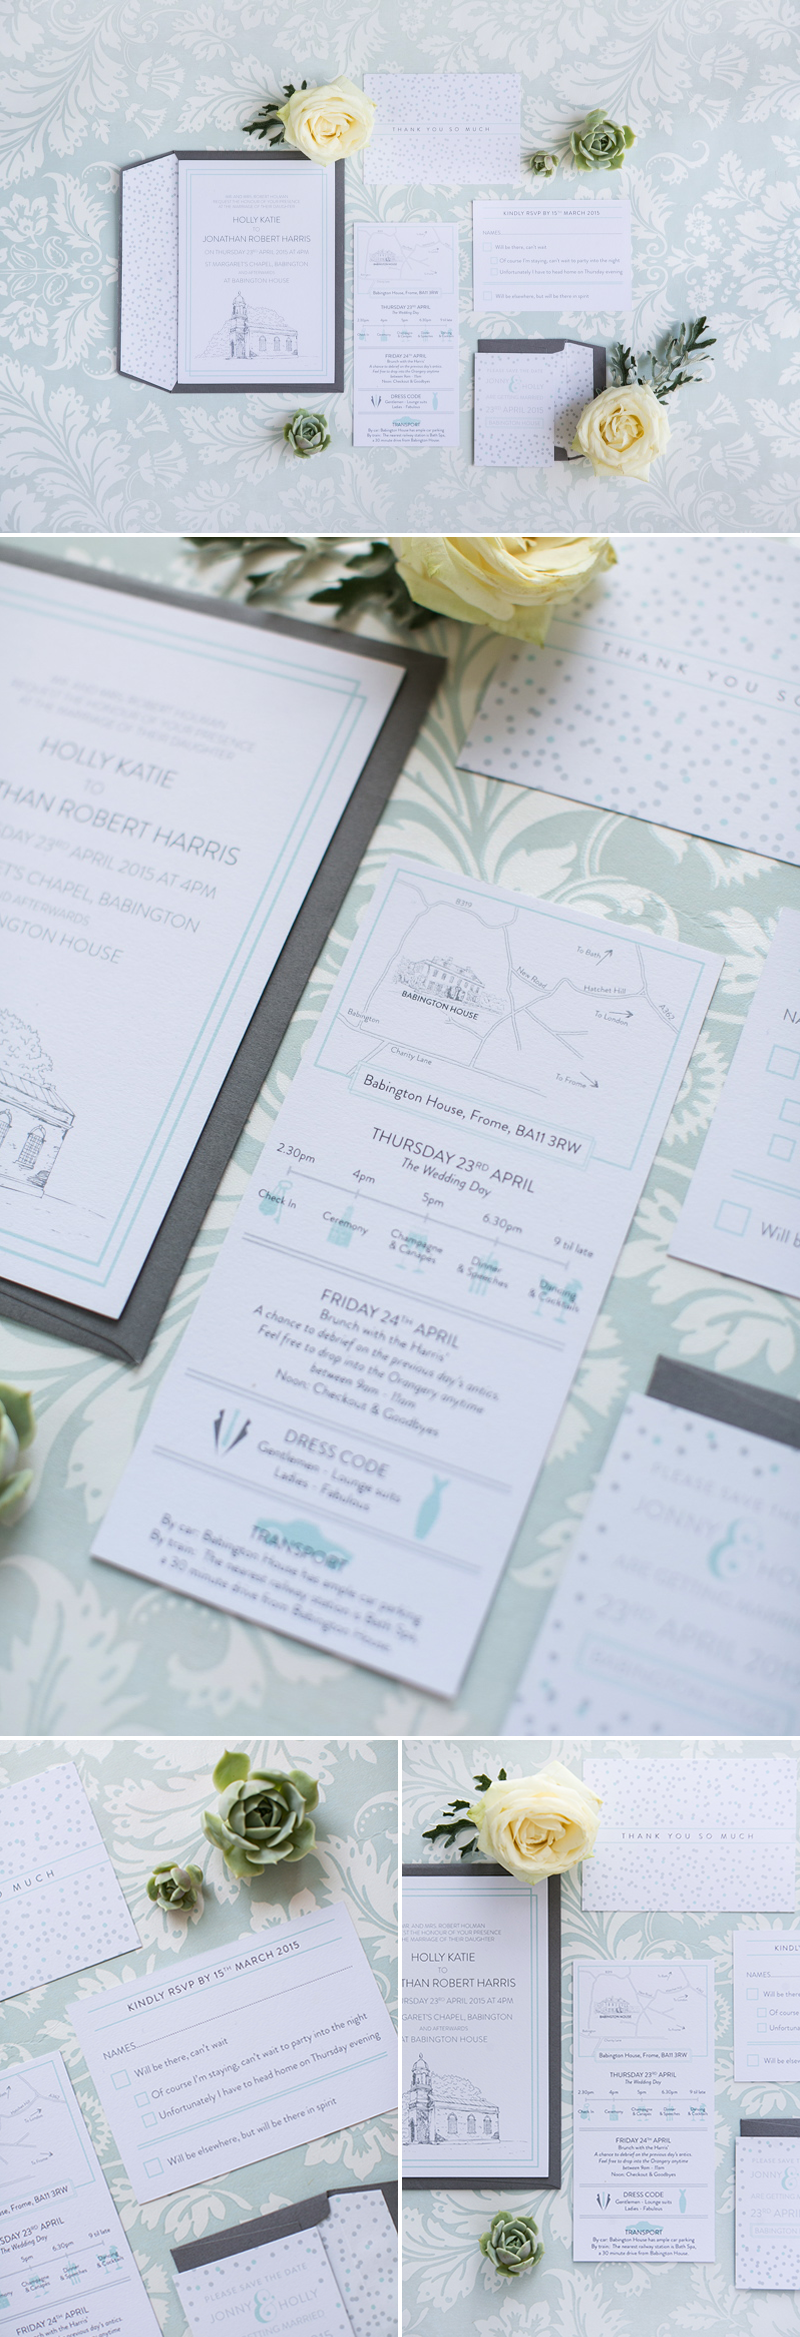 luxury-wedding-stationery-kate-ruth-romey-006